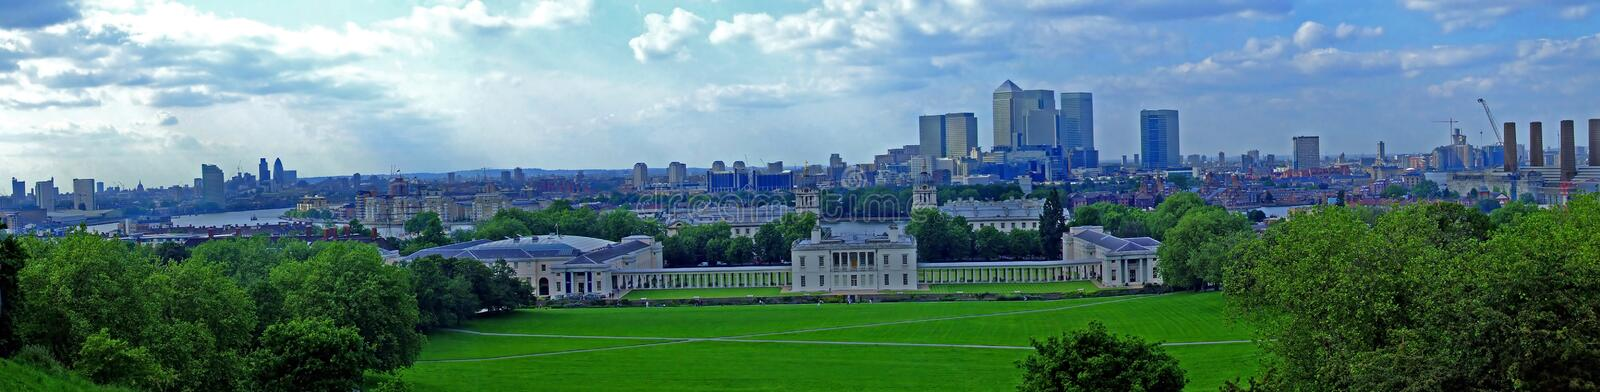 Greenwich-Panorama stockfoto